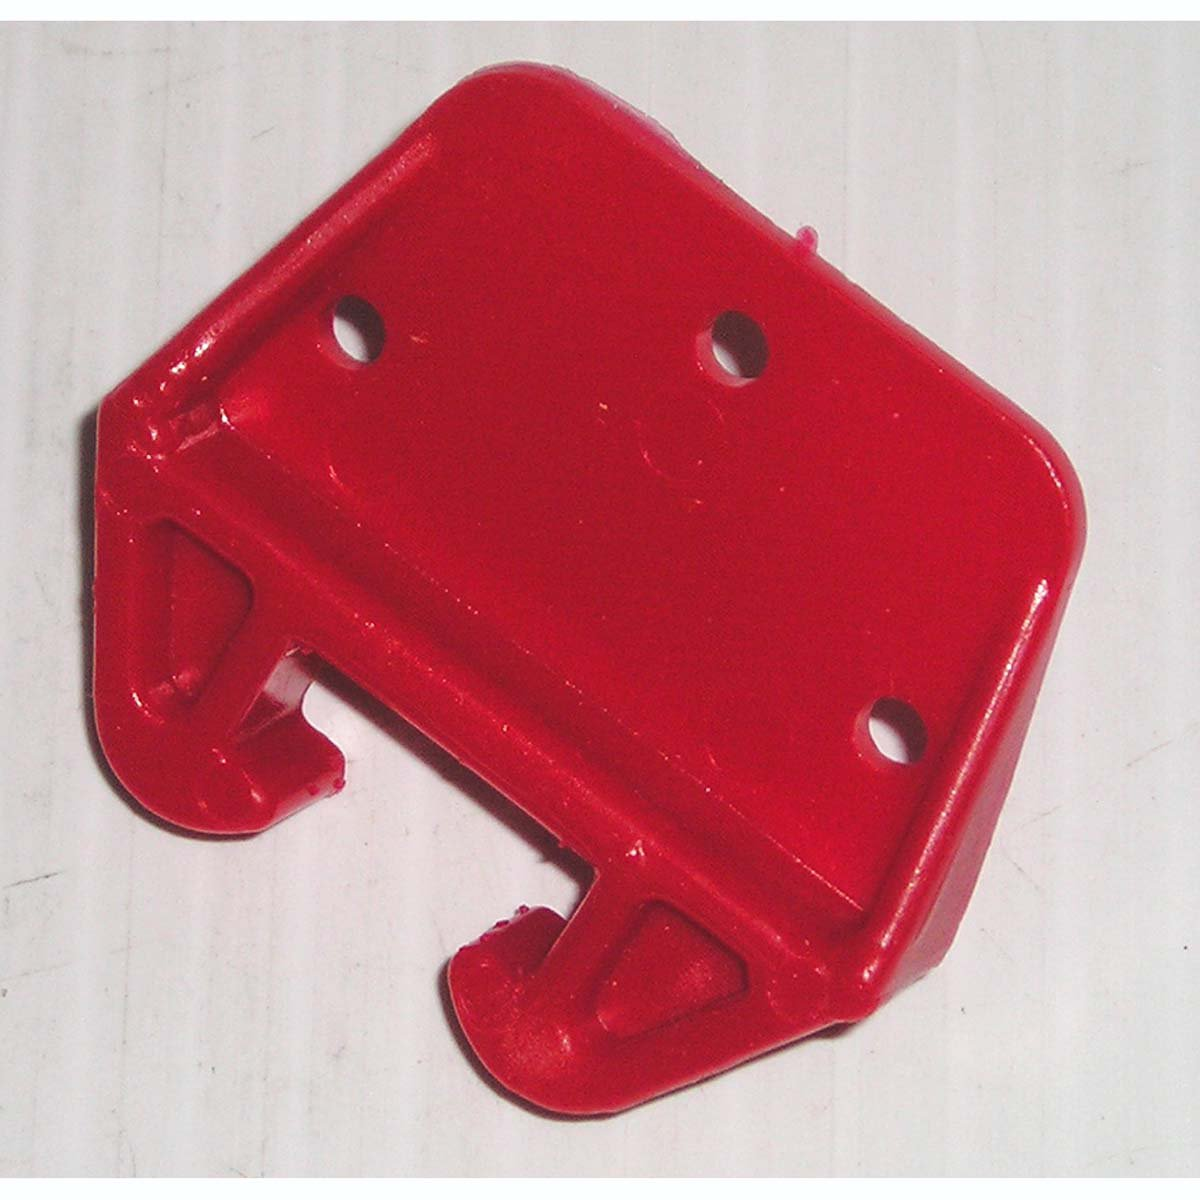 "Red Plastic Drawer Slide Guide for 3/4"" x 5/16"" Track, 1-1/2""W x 1-3/4""H"